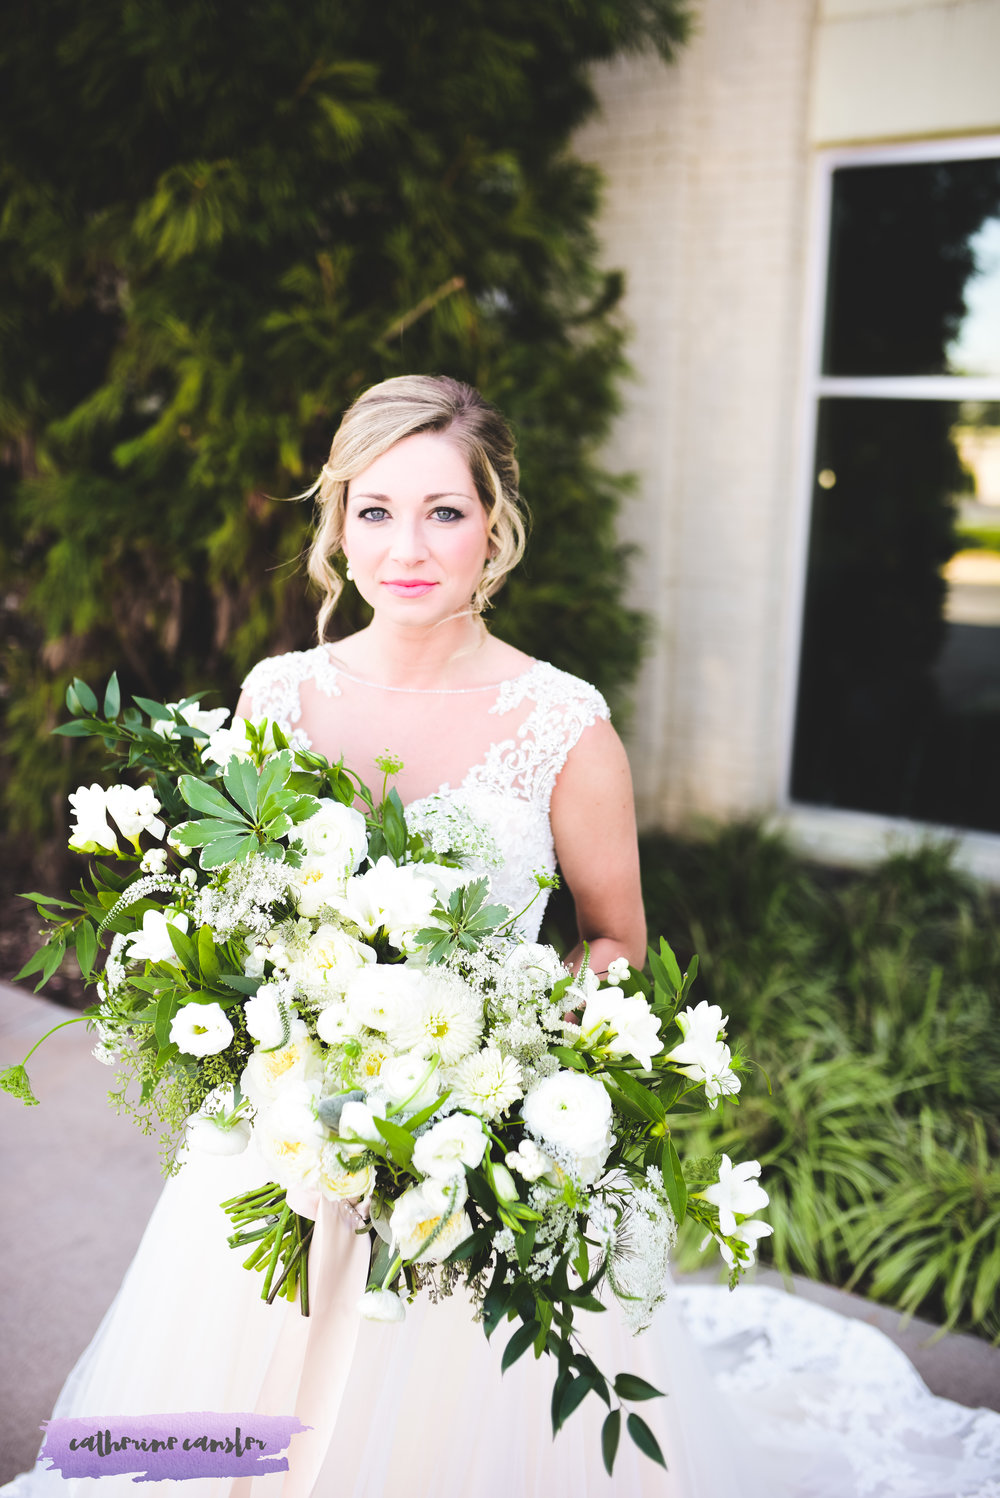 Dramatic White Bridal Bouquet | Flowers By Flower Buds. Picture by Catherine Cansler Photography